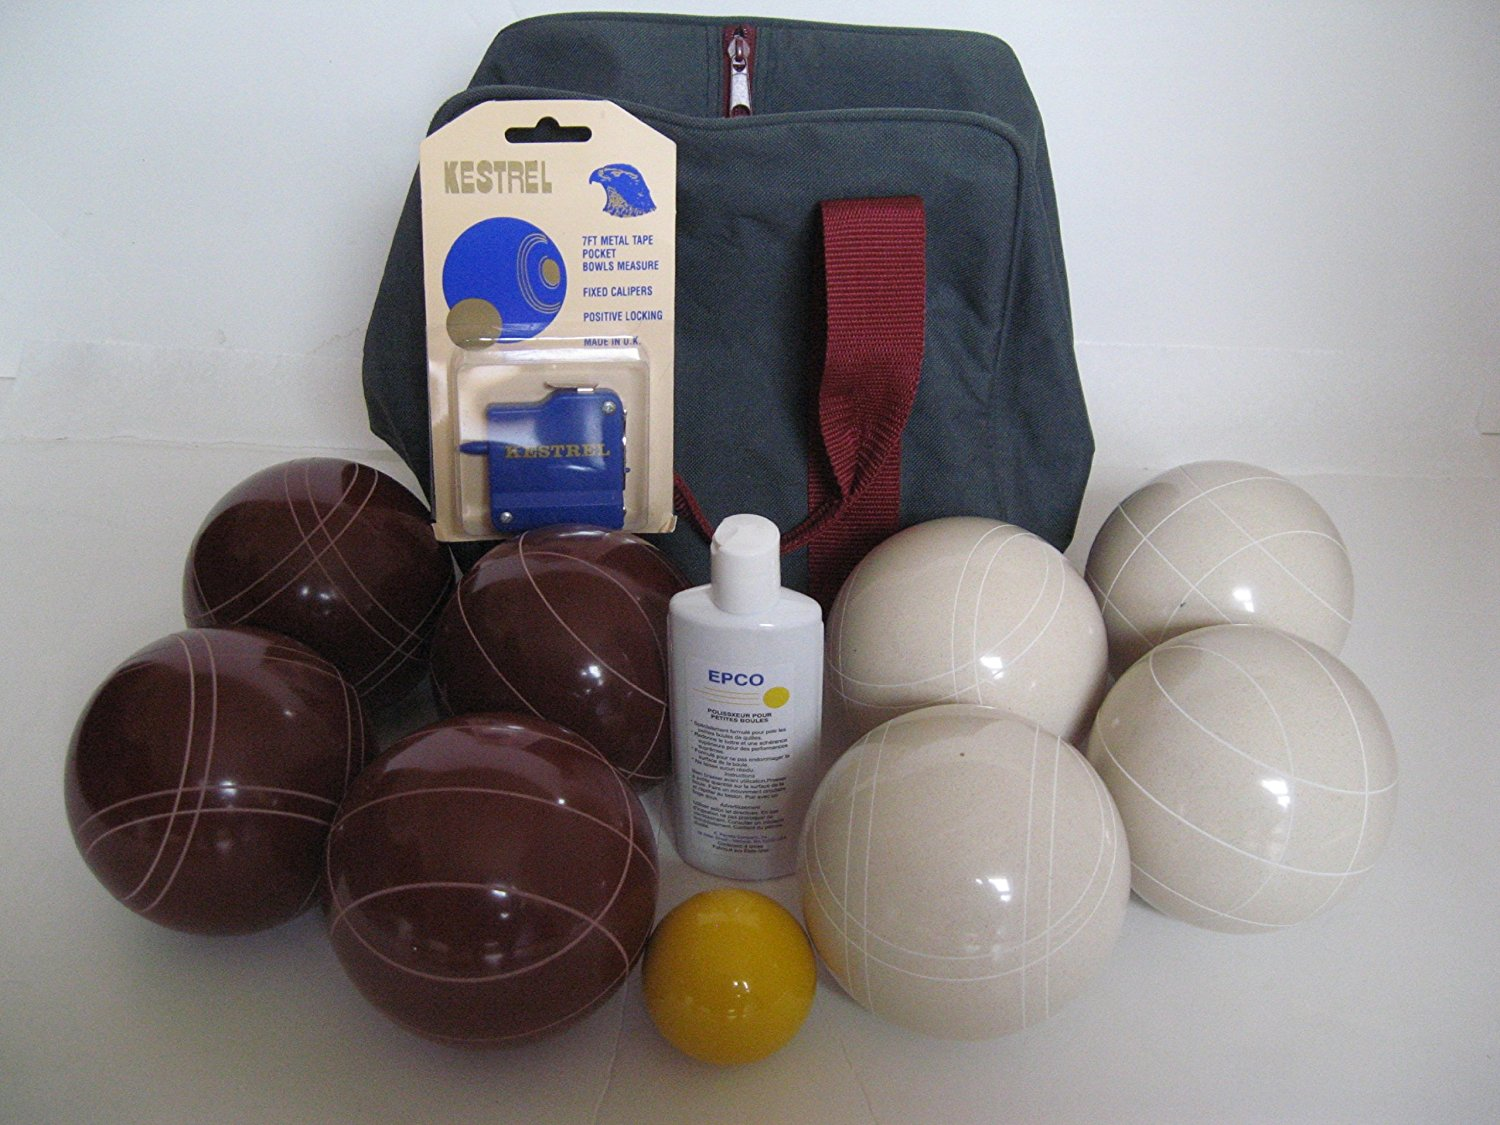 Premium Quality Basic Epco Bocce Package - 110mm Red and White Balls, Quality Nylon Bag, Meas...